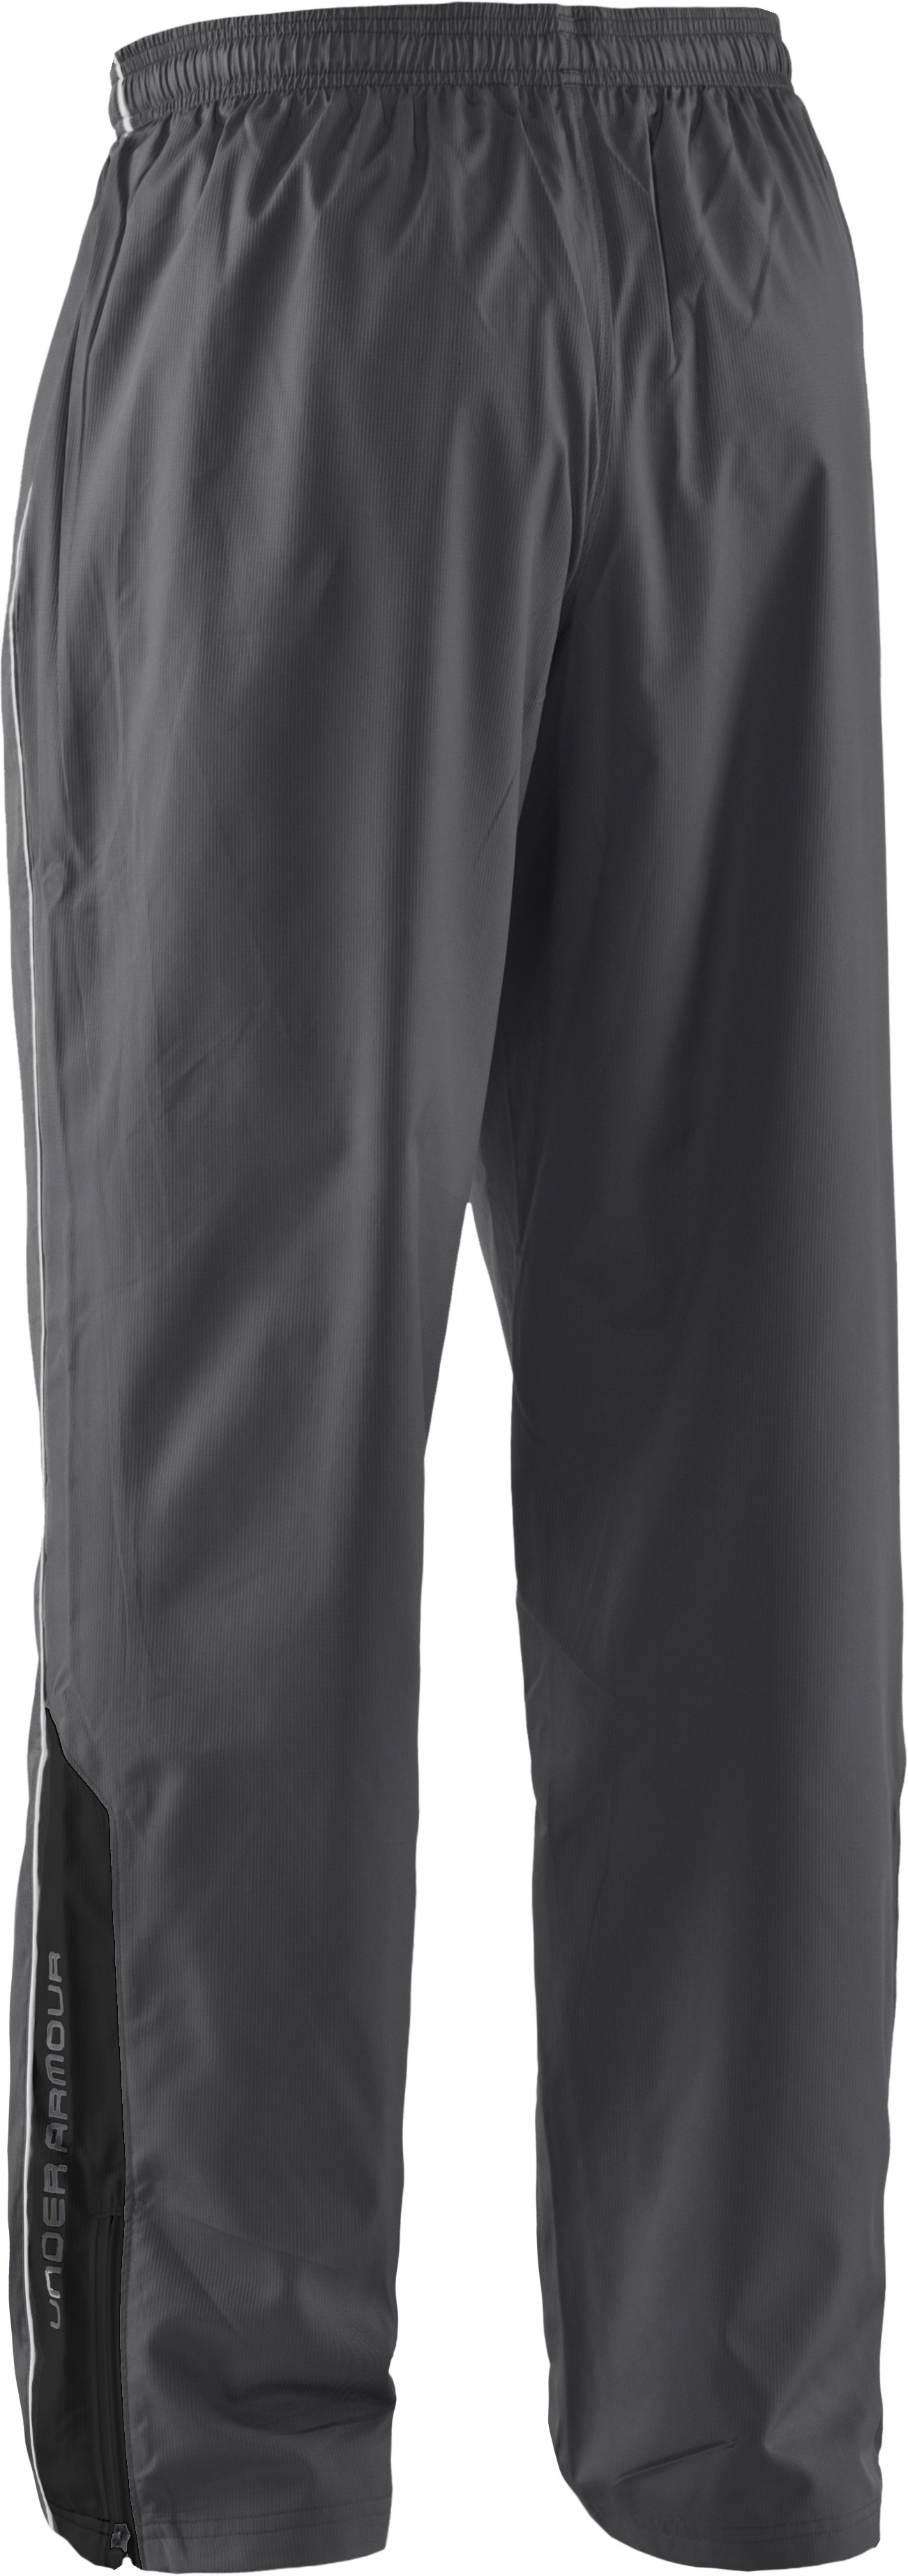 Men's UA Bandito Woven Warm-Up Pants, Graphite